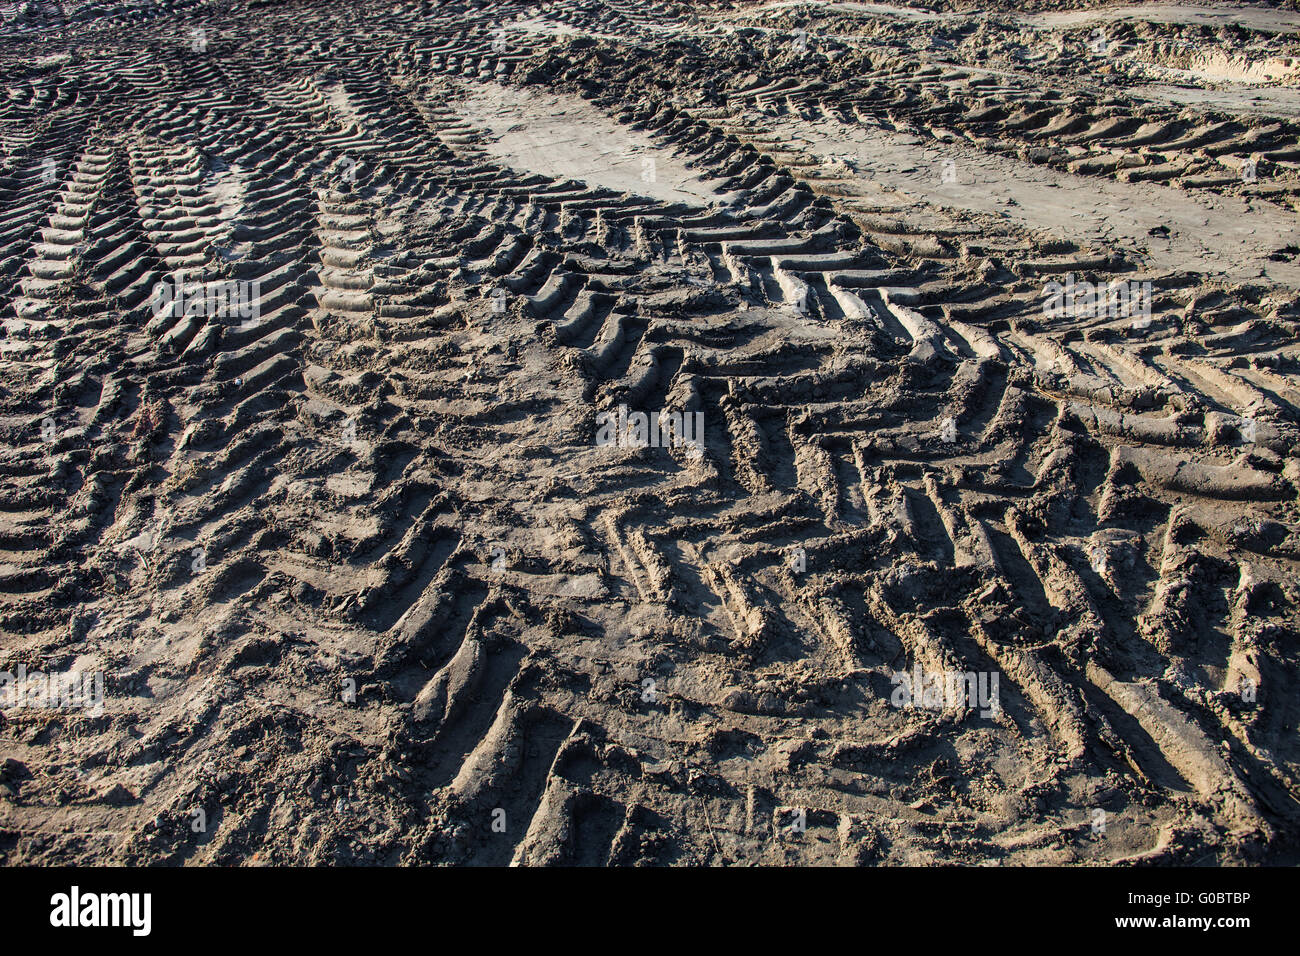 Wheel tracks on the ground - Stock Image